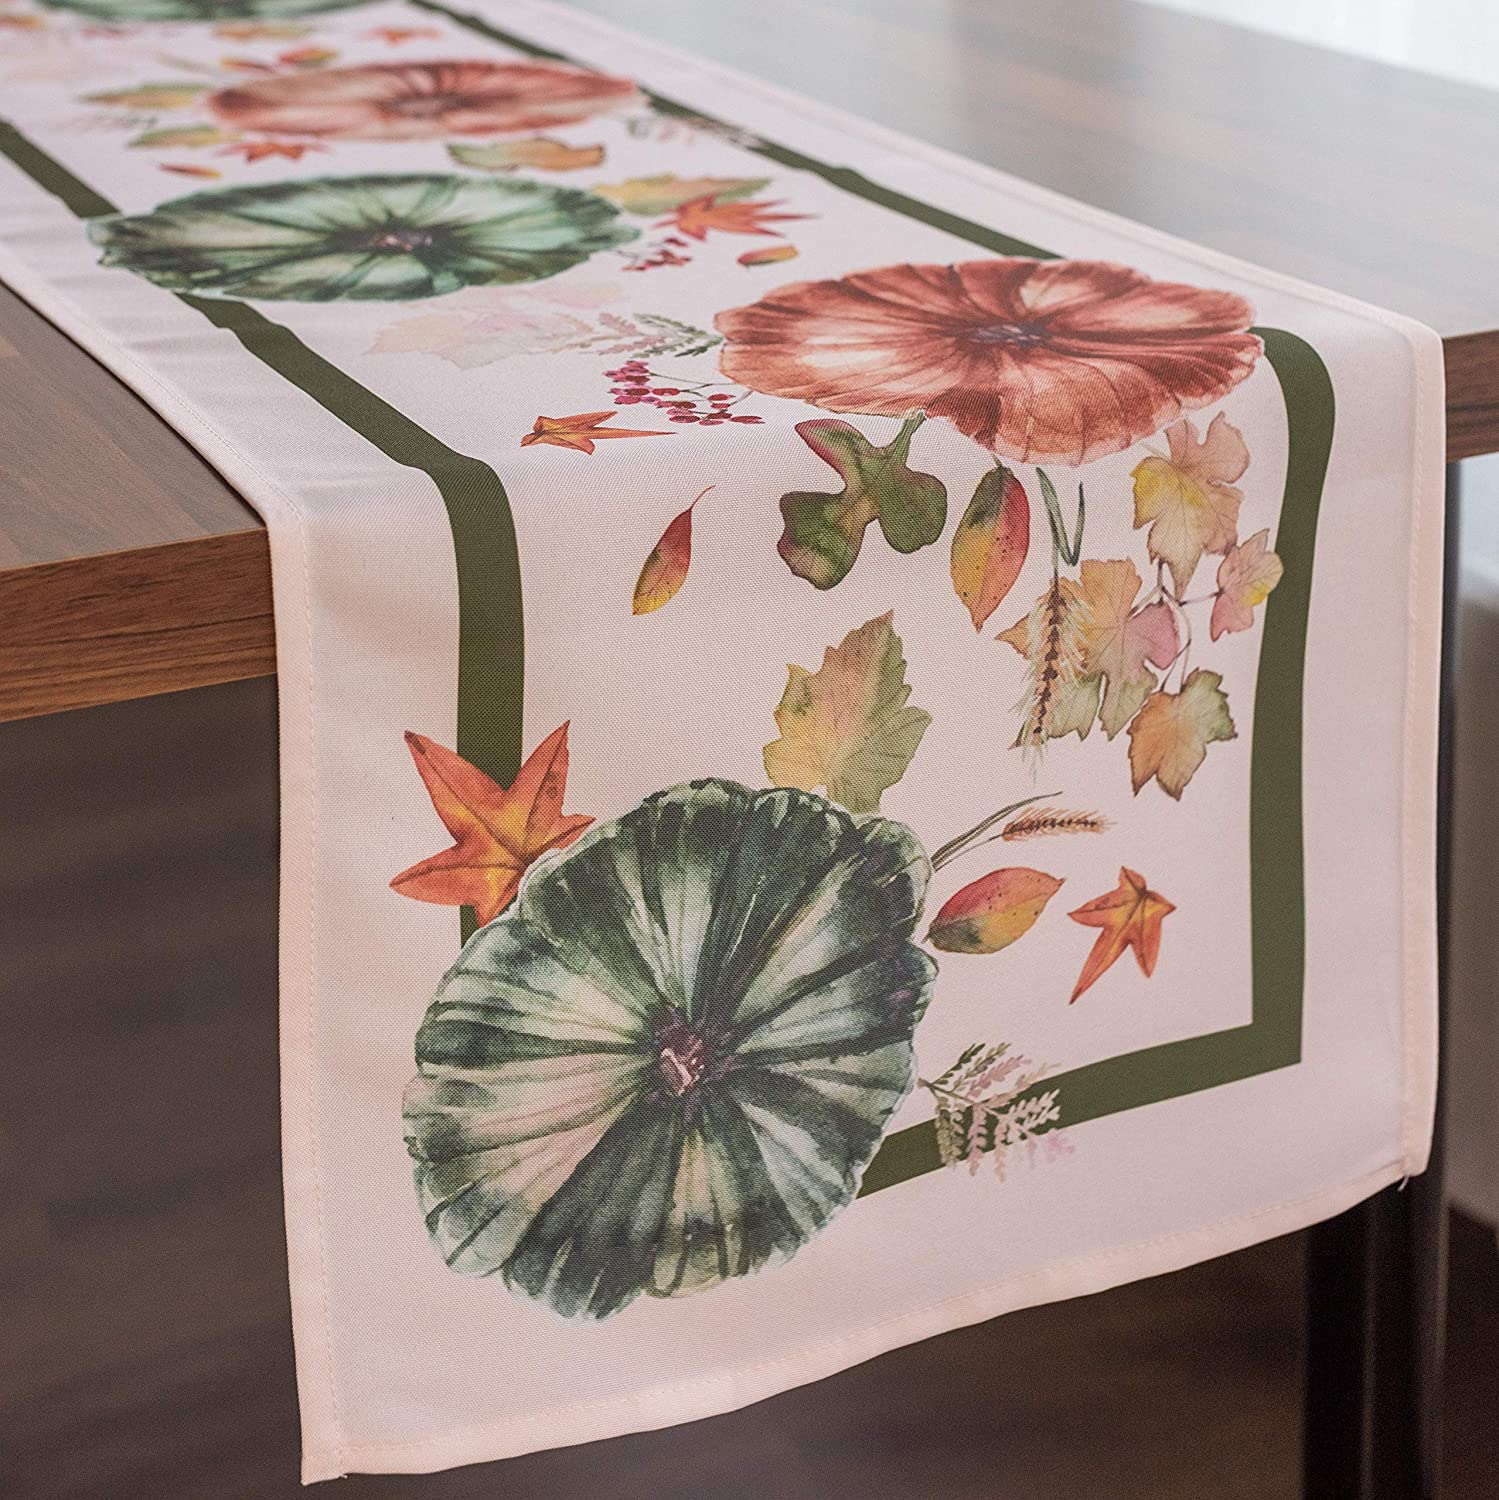 Non-Iron Stain Resistant Thanksgiving Table Runner – Pumpkins Table Cover Home Dining Room Table Decor - Thanksgiving Decorations, Stylish Ivory Thanksgiving Tablerunner 14